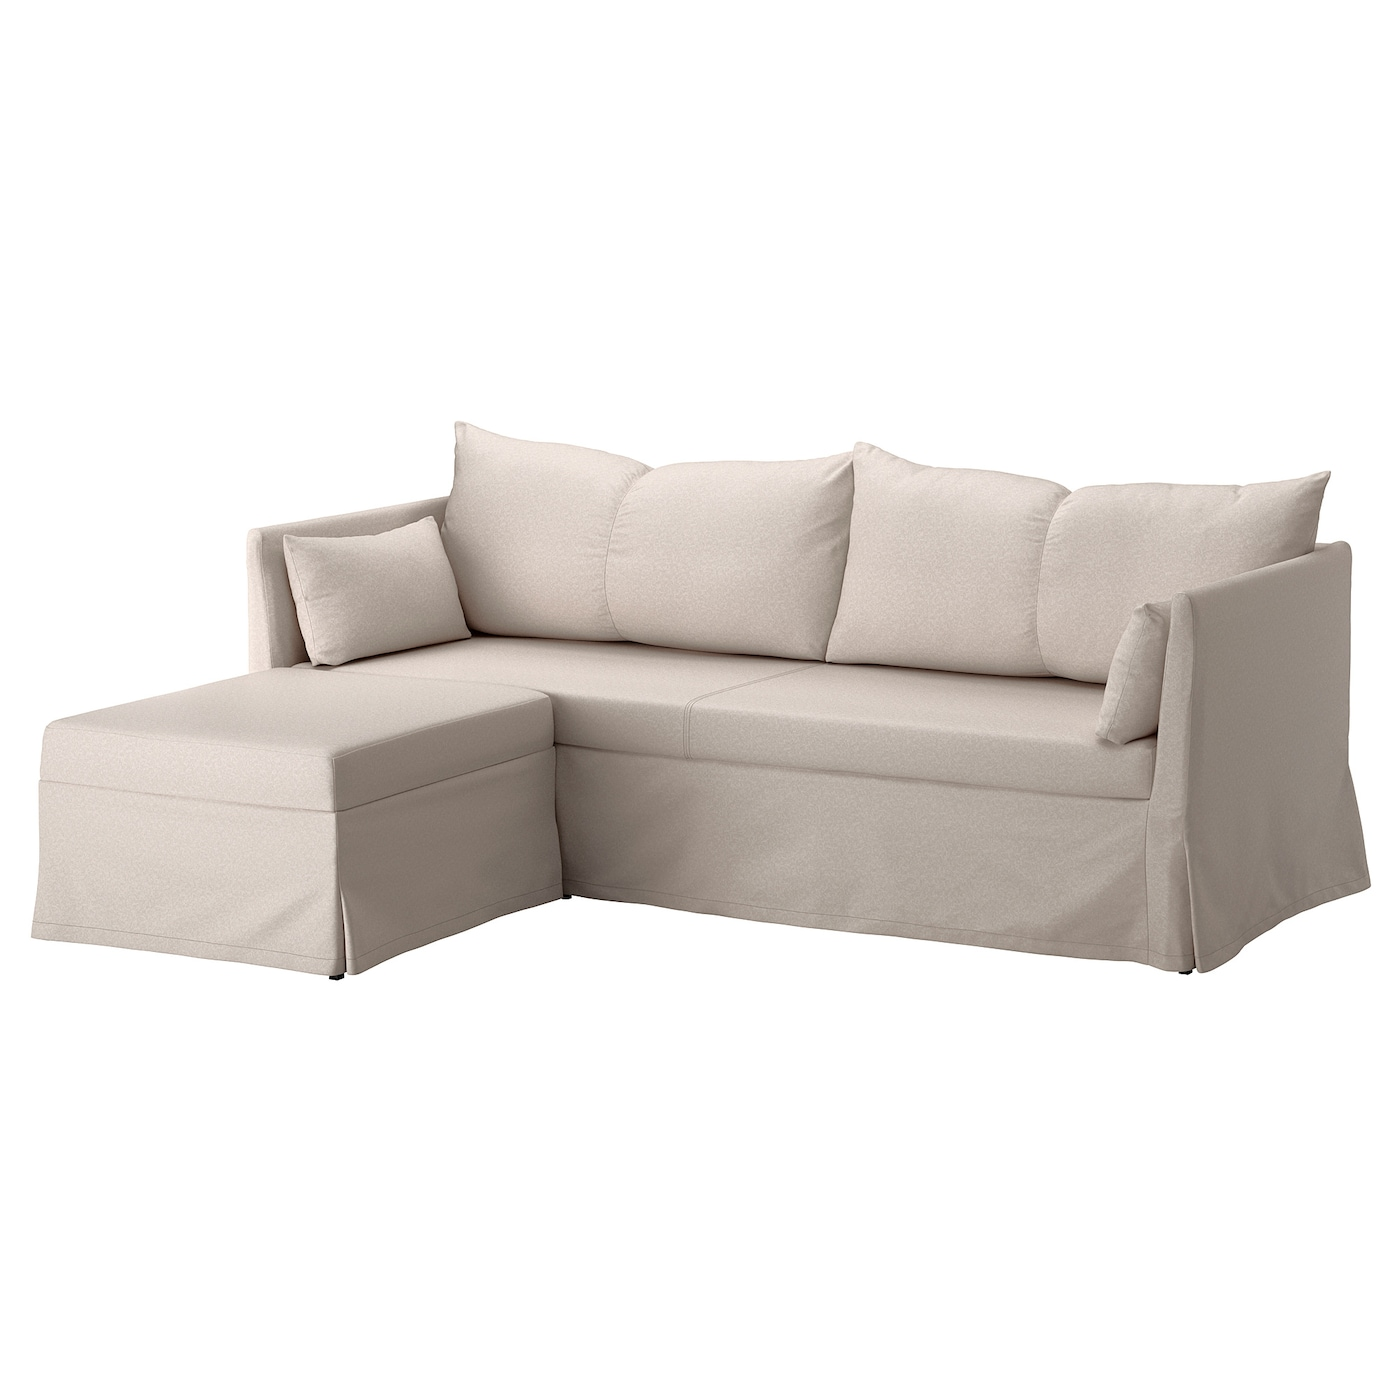 Sandbacken corner sofa 3 seat ransta natural ikea for Ikea corner sofa